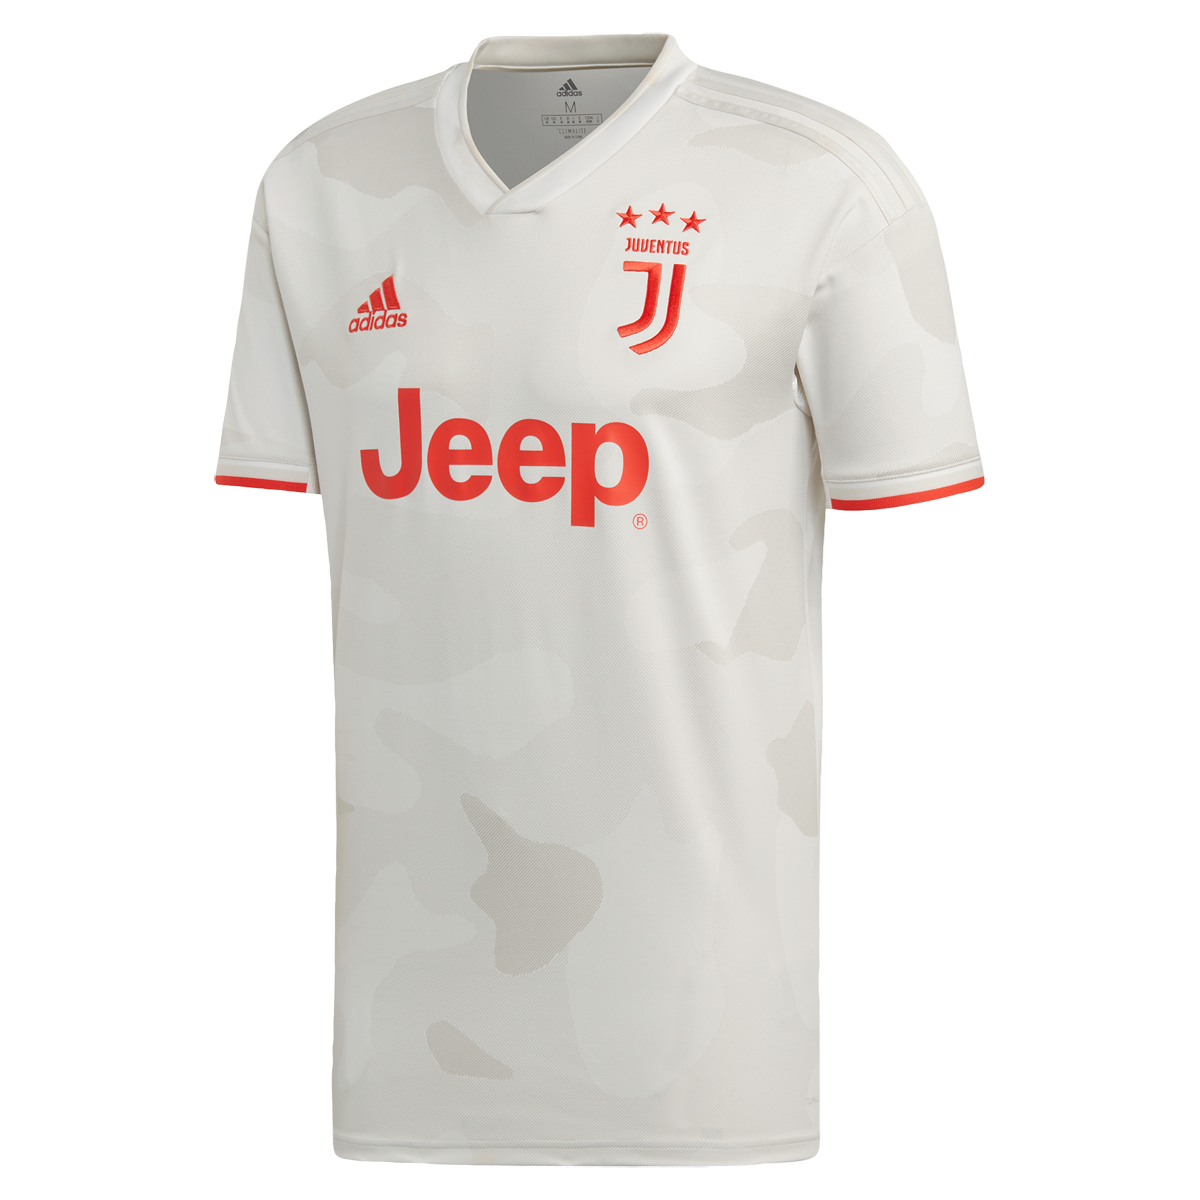 new arrival de9db c1407 adidas Juventus Authentic Away Jersey 19/20-s | Products in ...